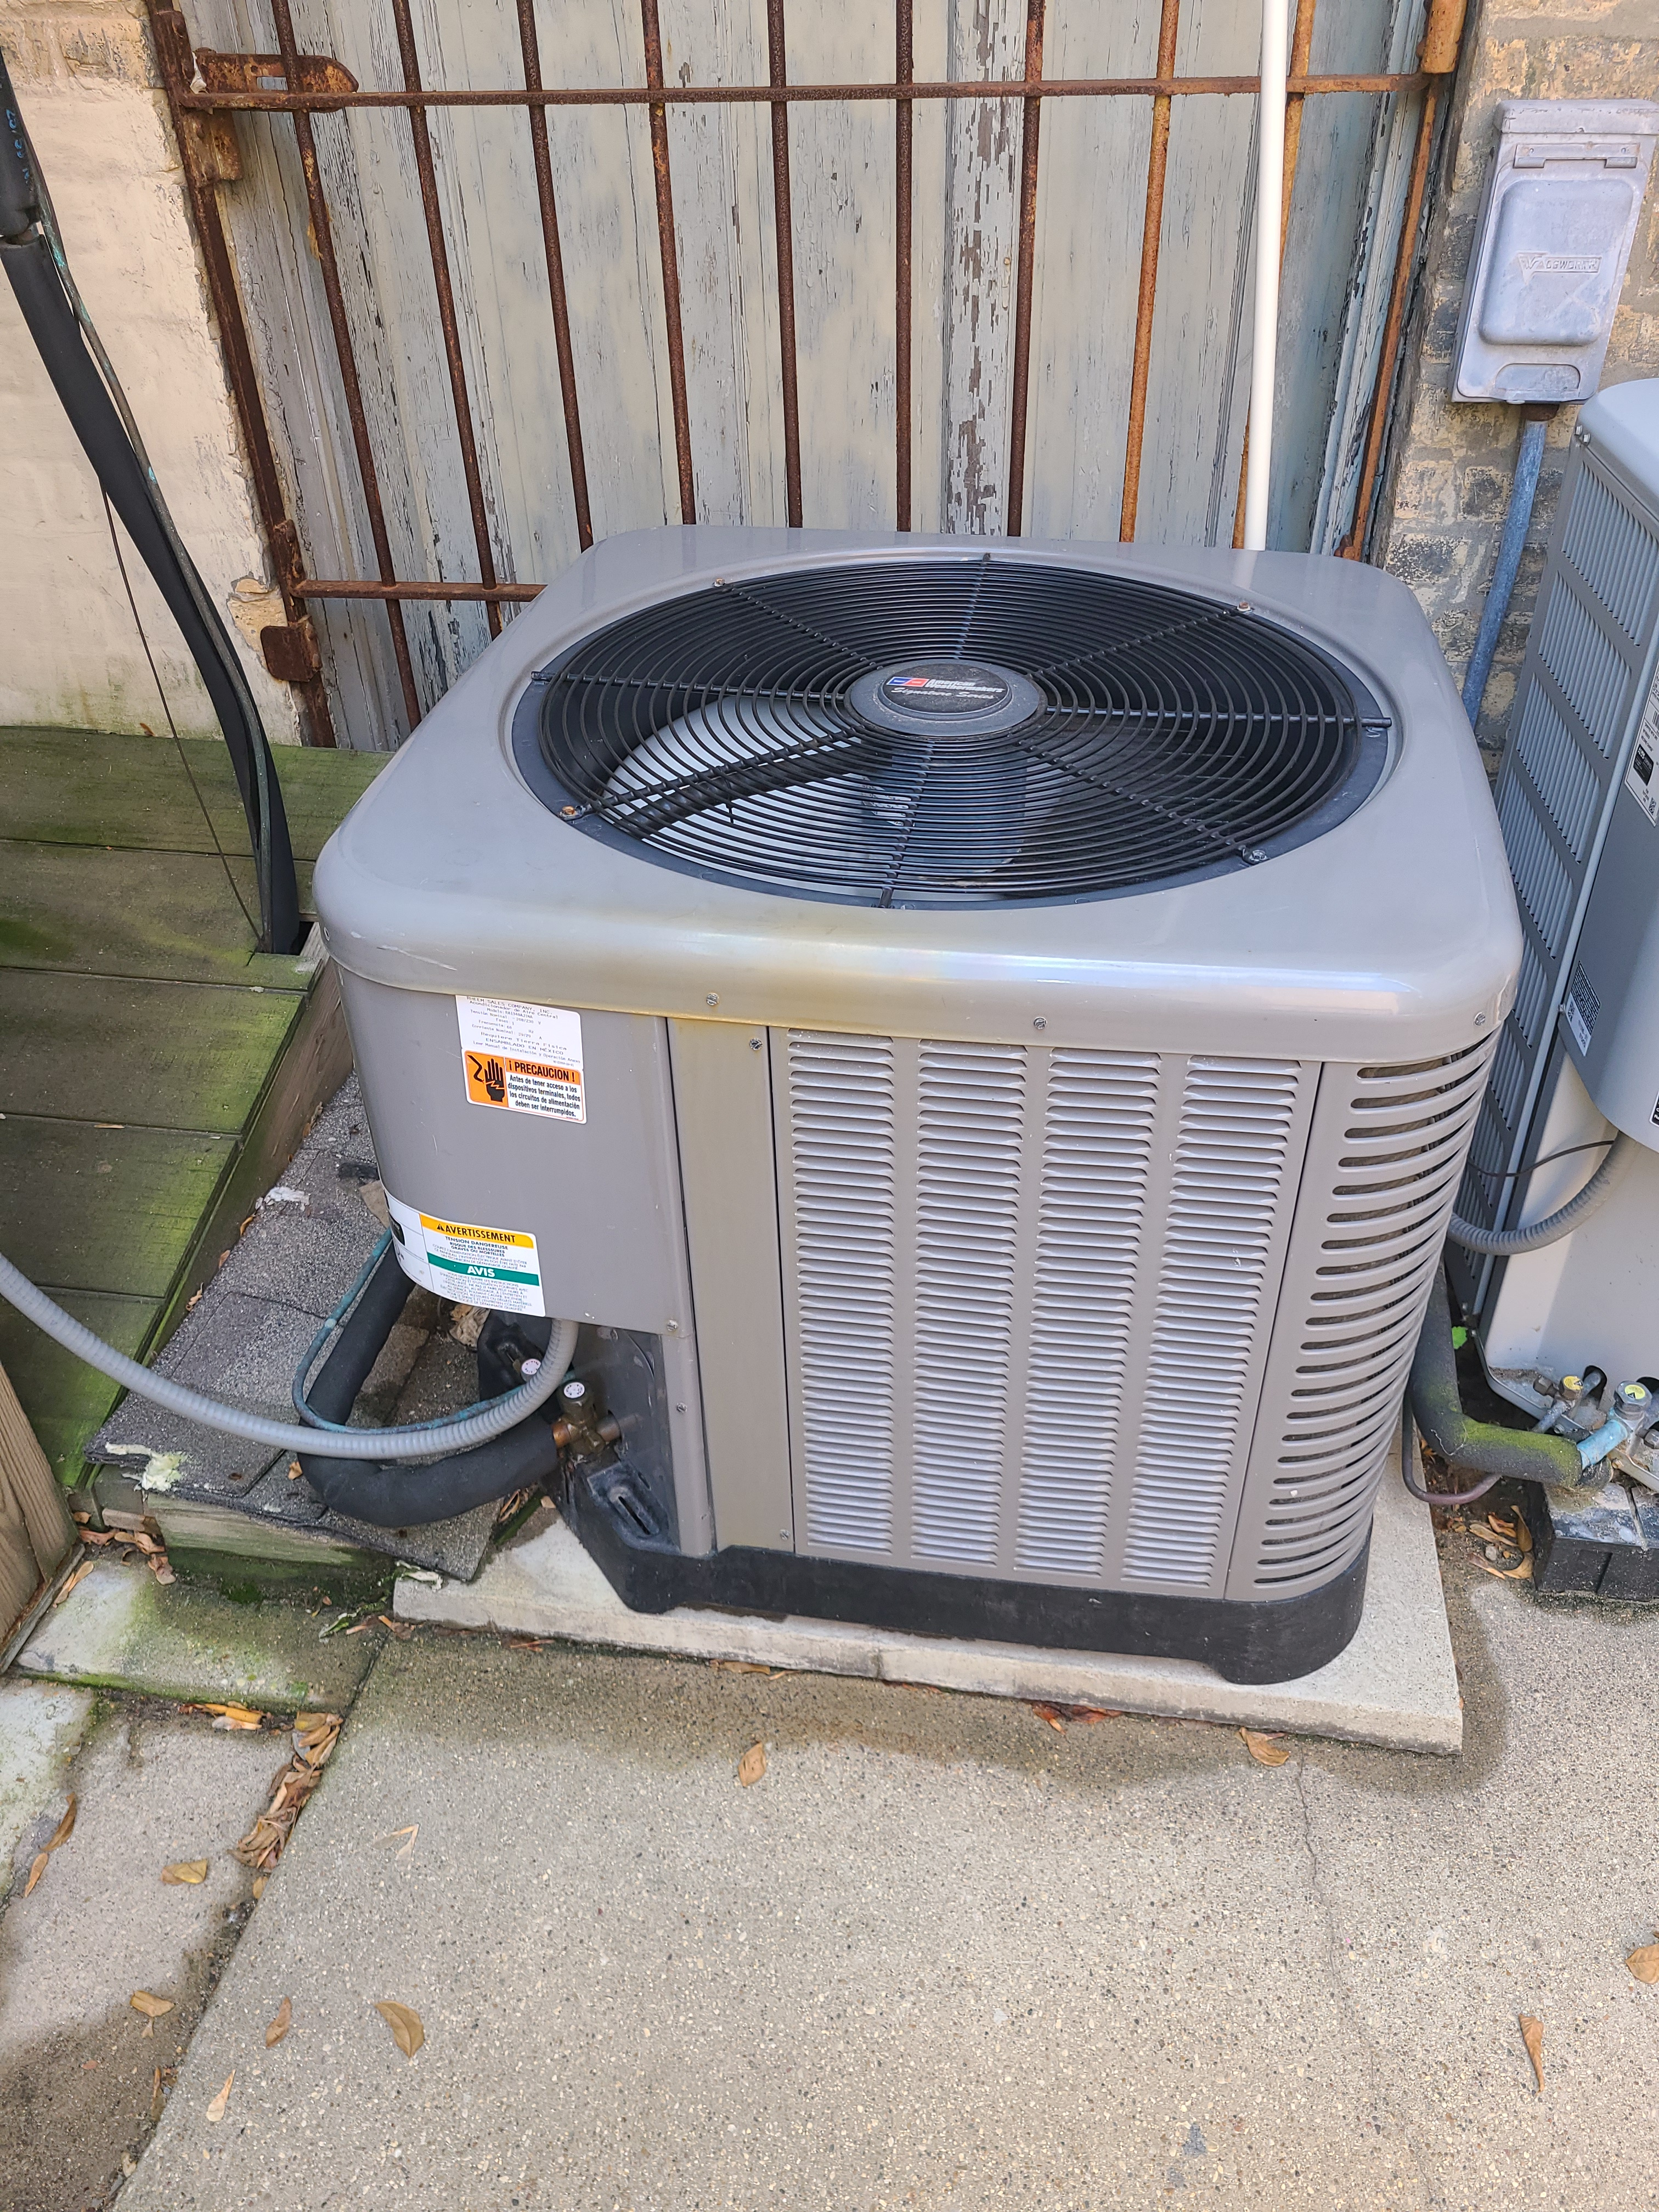 Ruud ac system frozen. System issue diagnosed and repaired.